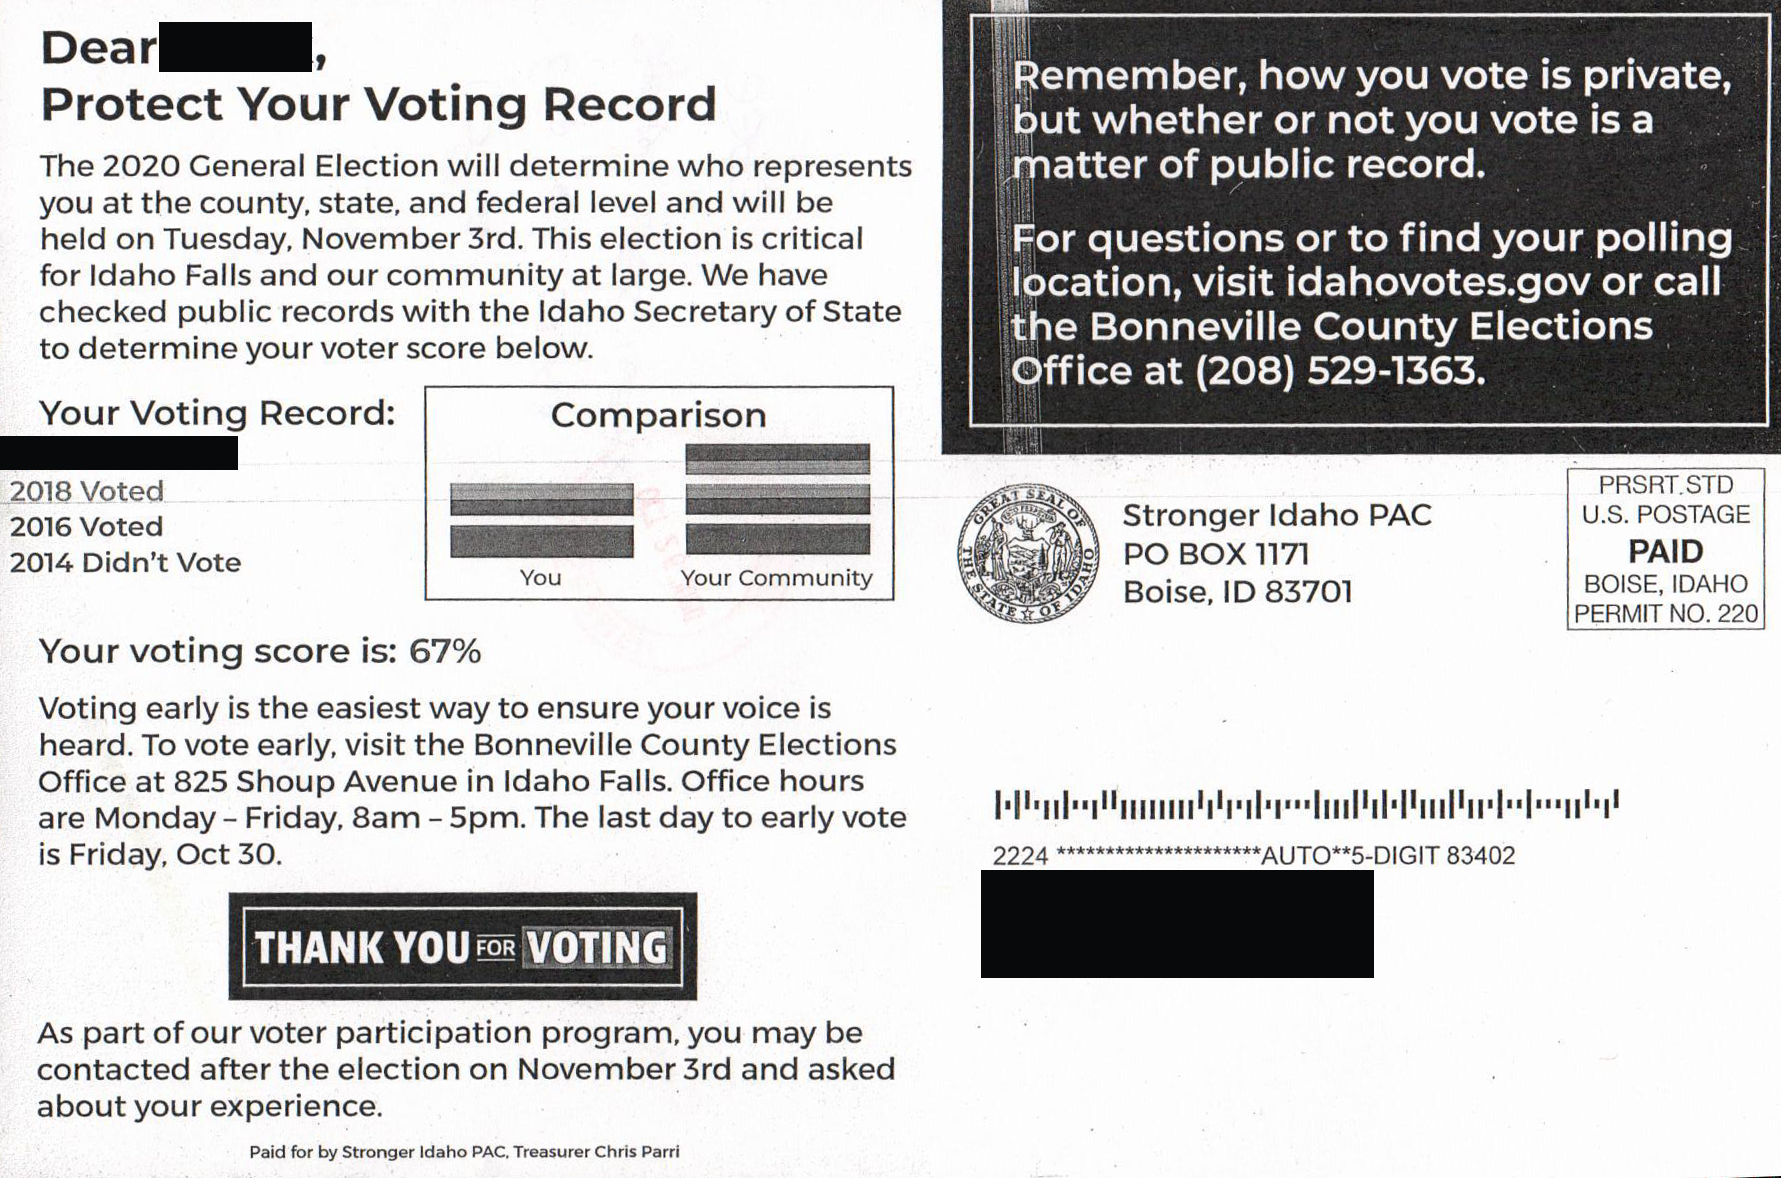 A misleading voter information mailing bearing the unauthorized use of the Idaho State Seal